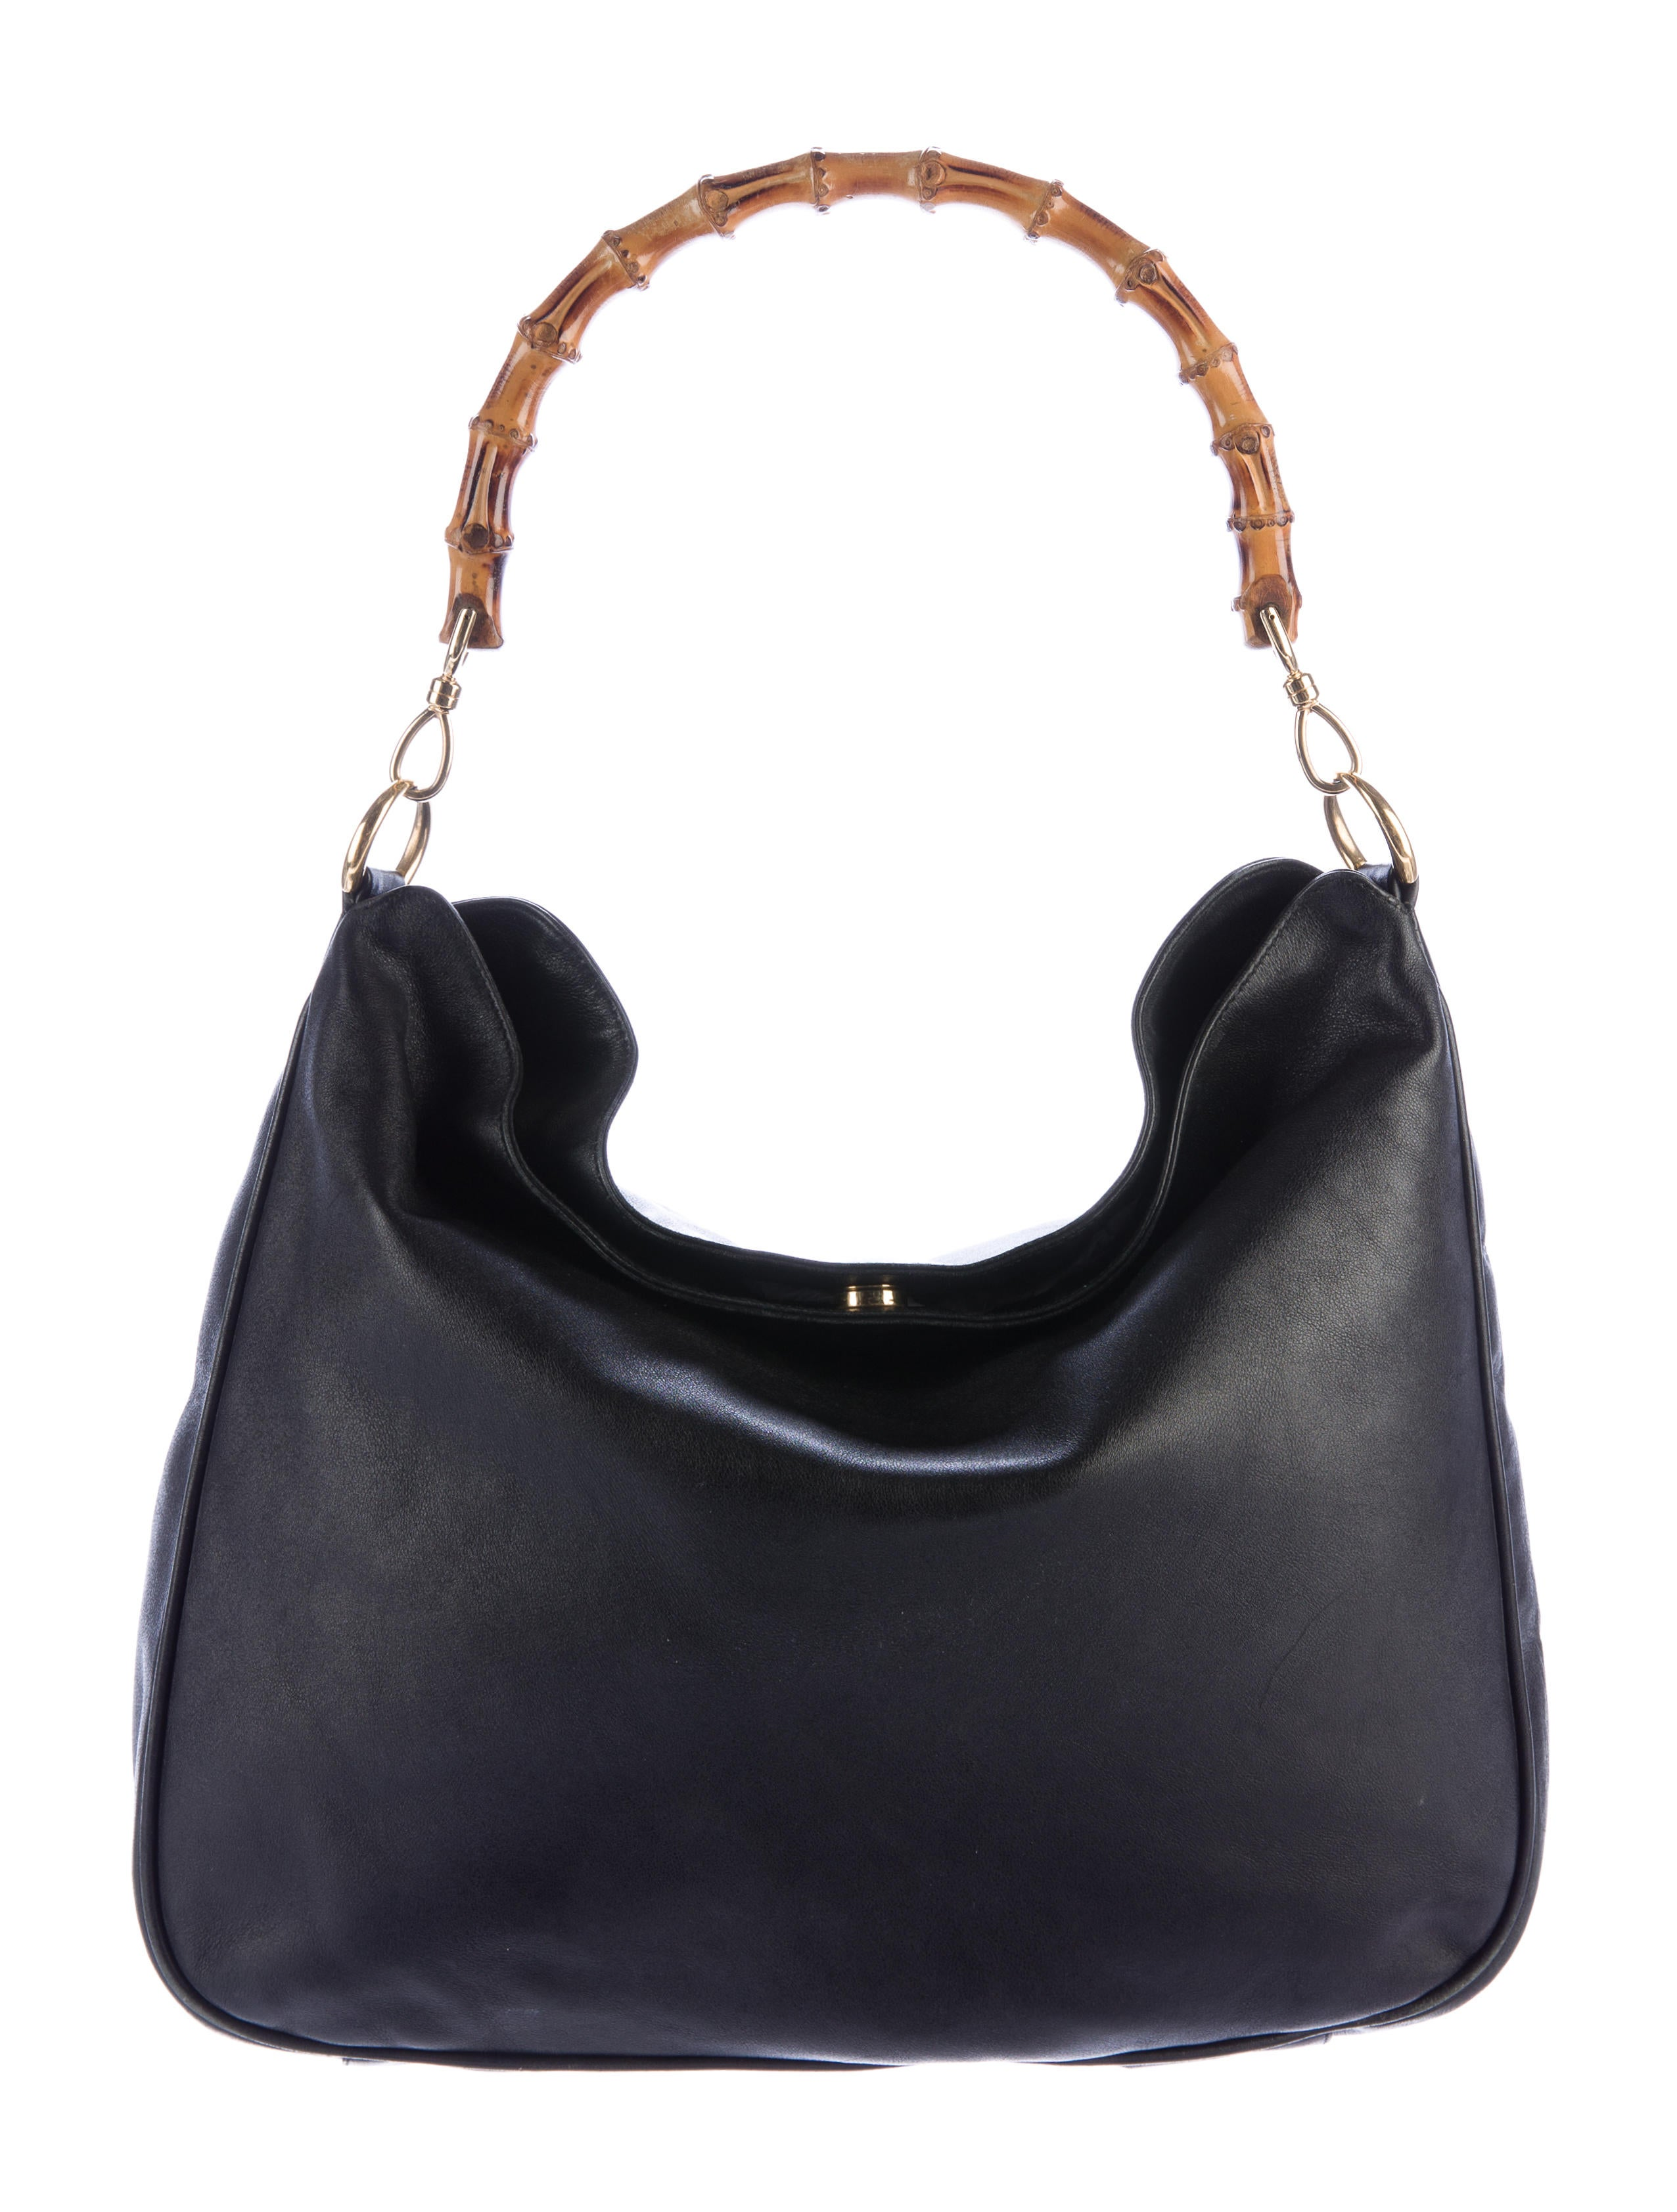 4e5be95f11d6 Vintage Gucci Hobo Handbag | Stanford Center for Opportunity Policy ...